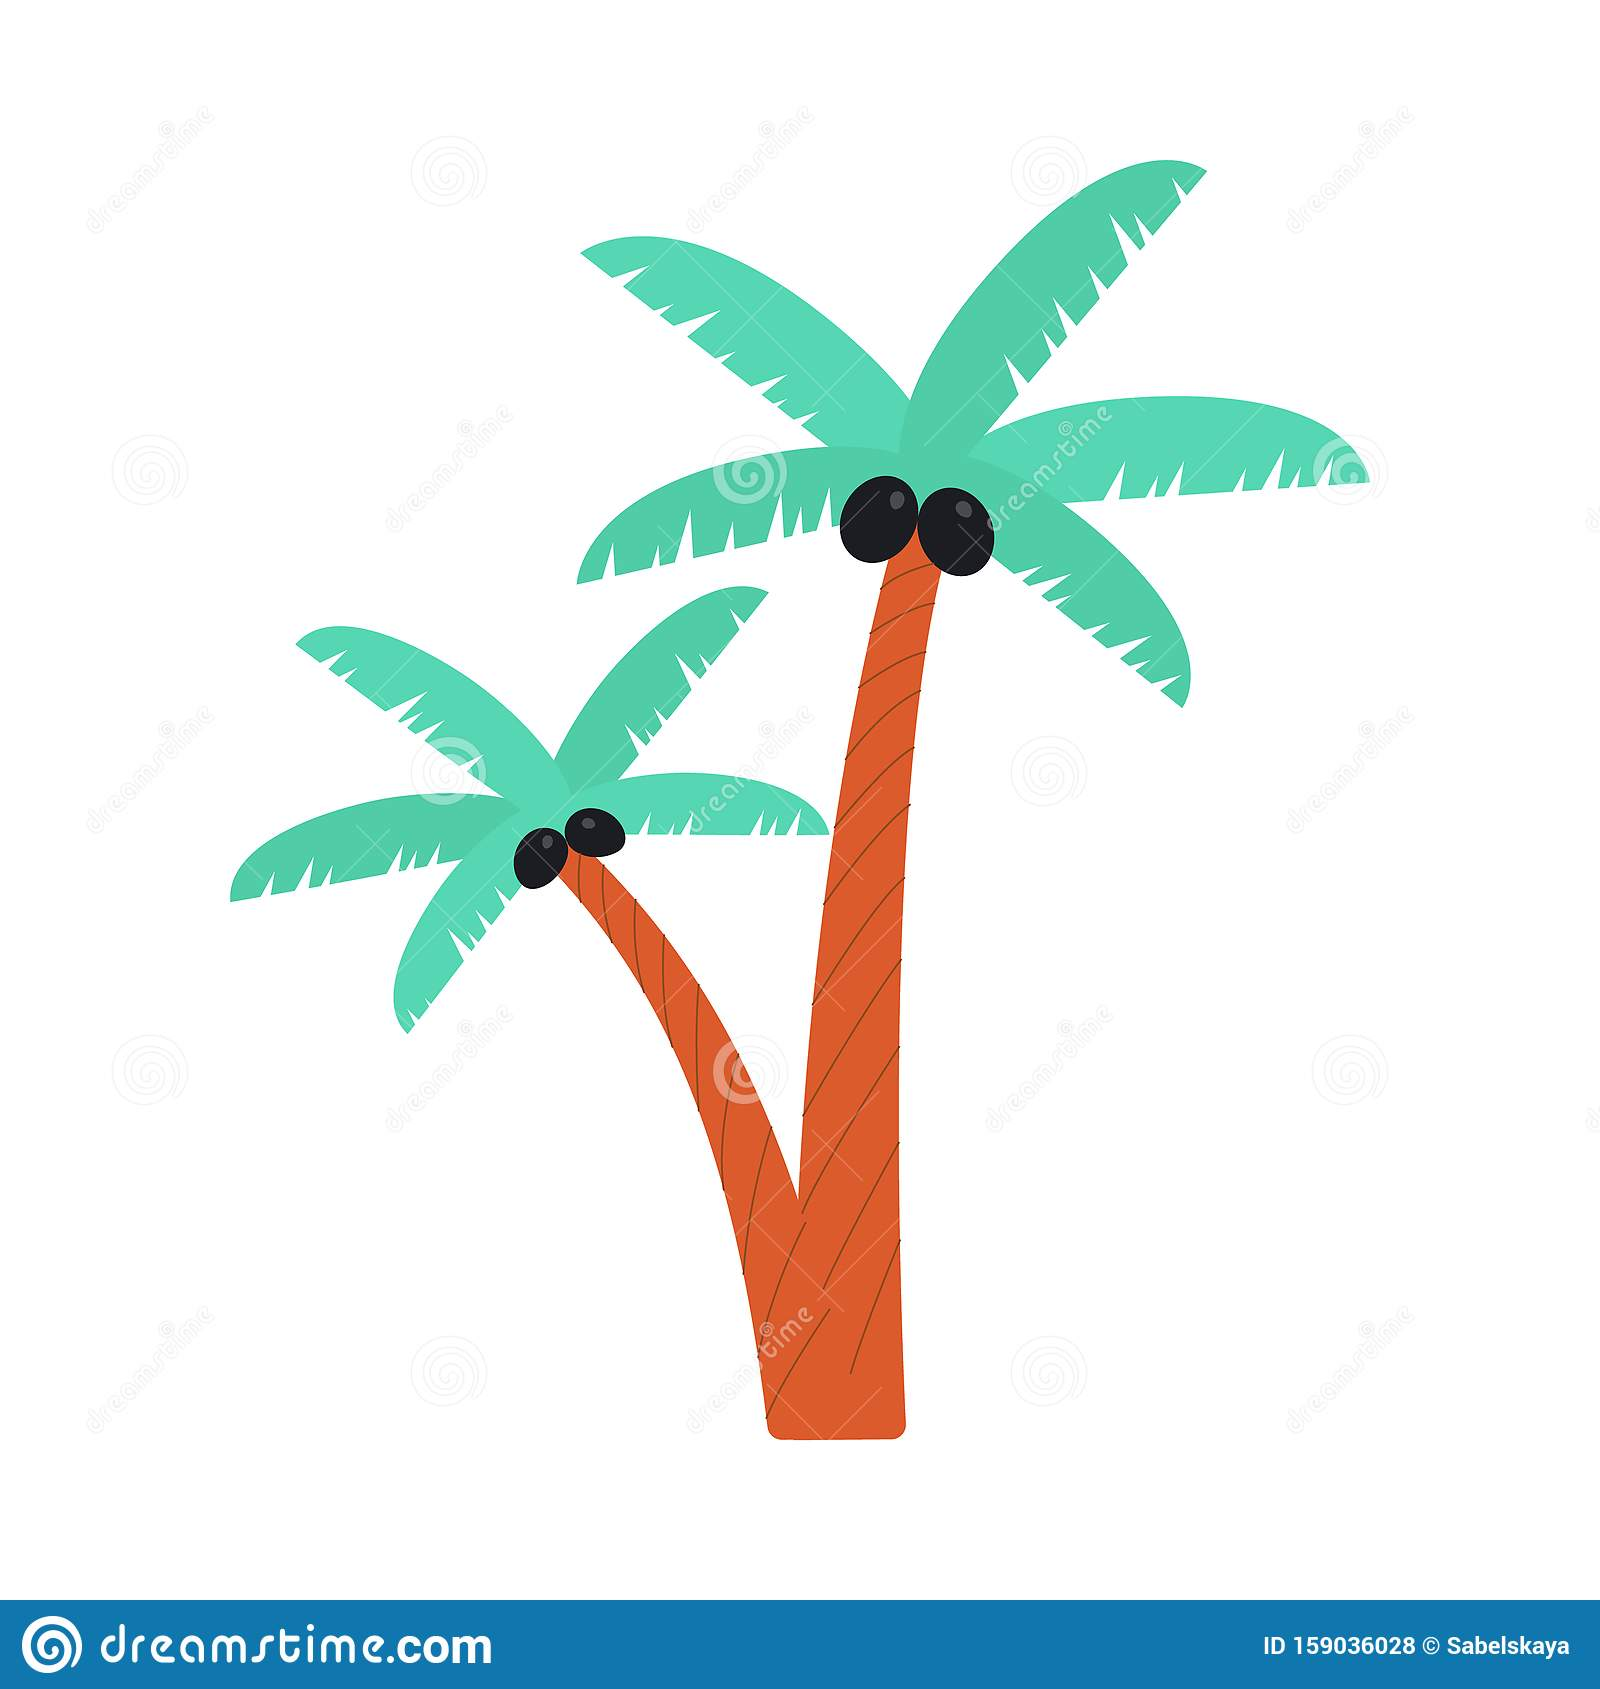 Cartoon Palm Tree Drawing With Black Coconuts Isolated On White Background Stock Vector Illustration Of Tree Branch 159036028 Tree no leaves drawing at getdrawings | free download. dreamstime com